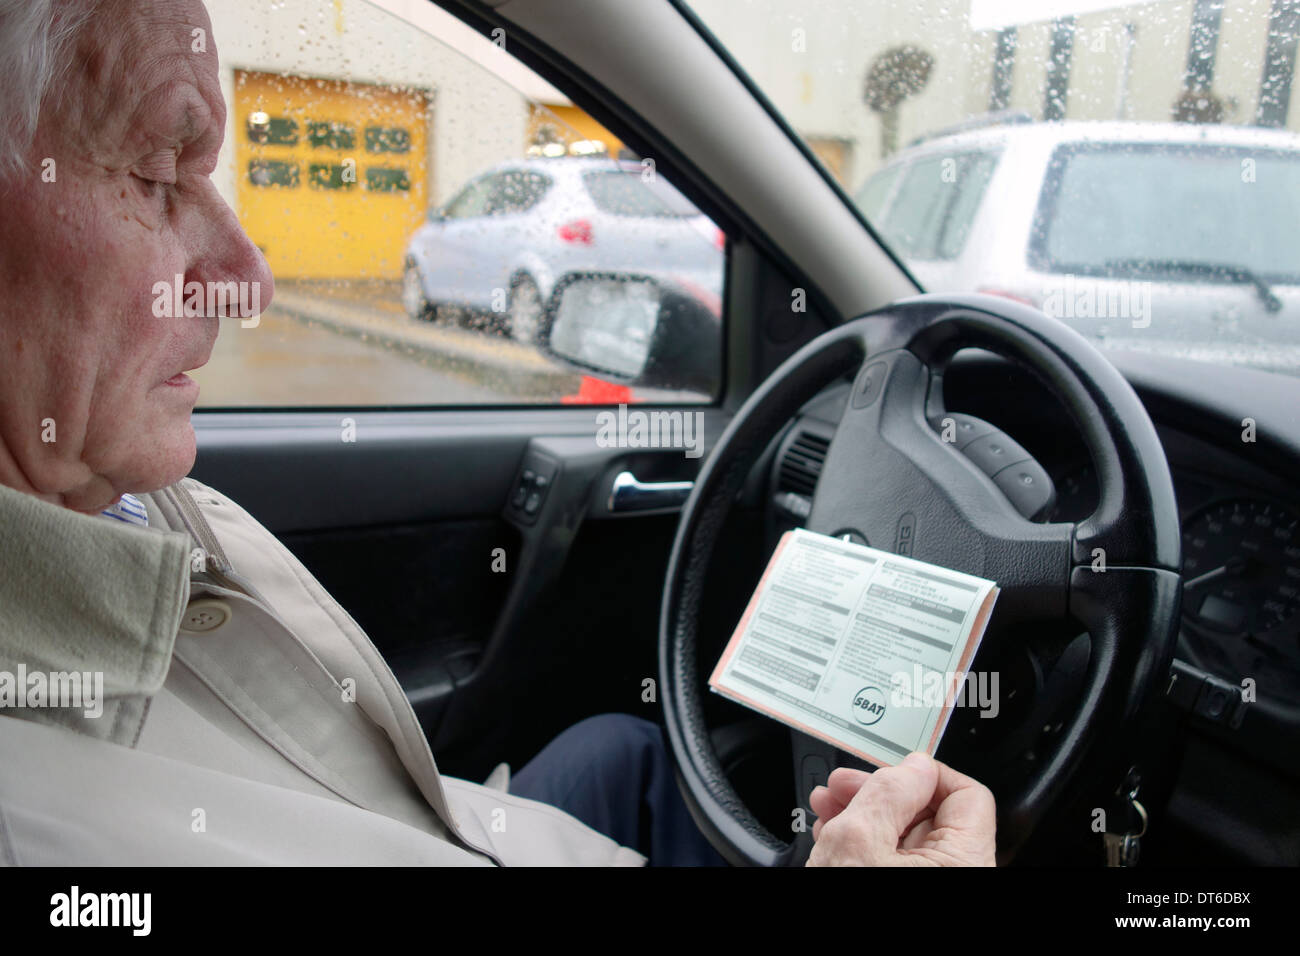 Elderly man looking at SBAT card in car while queuing in front of MOT testing centre for a yearly motor vehicle inspection - Stock Image